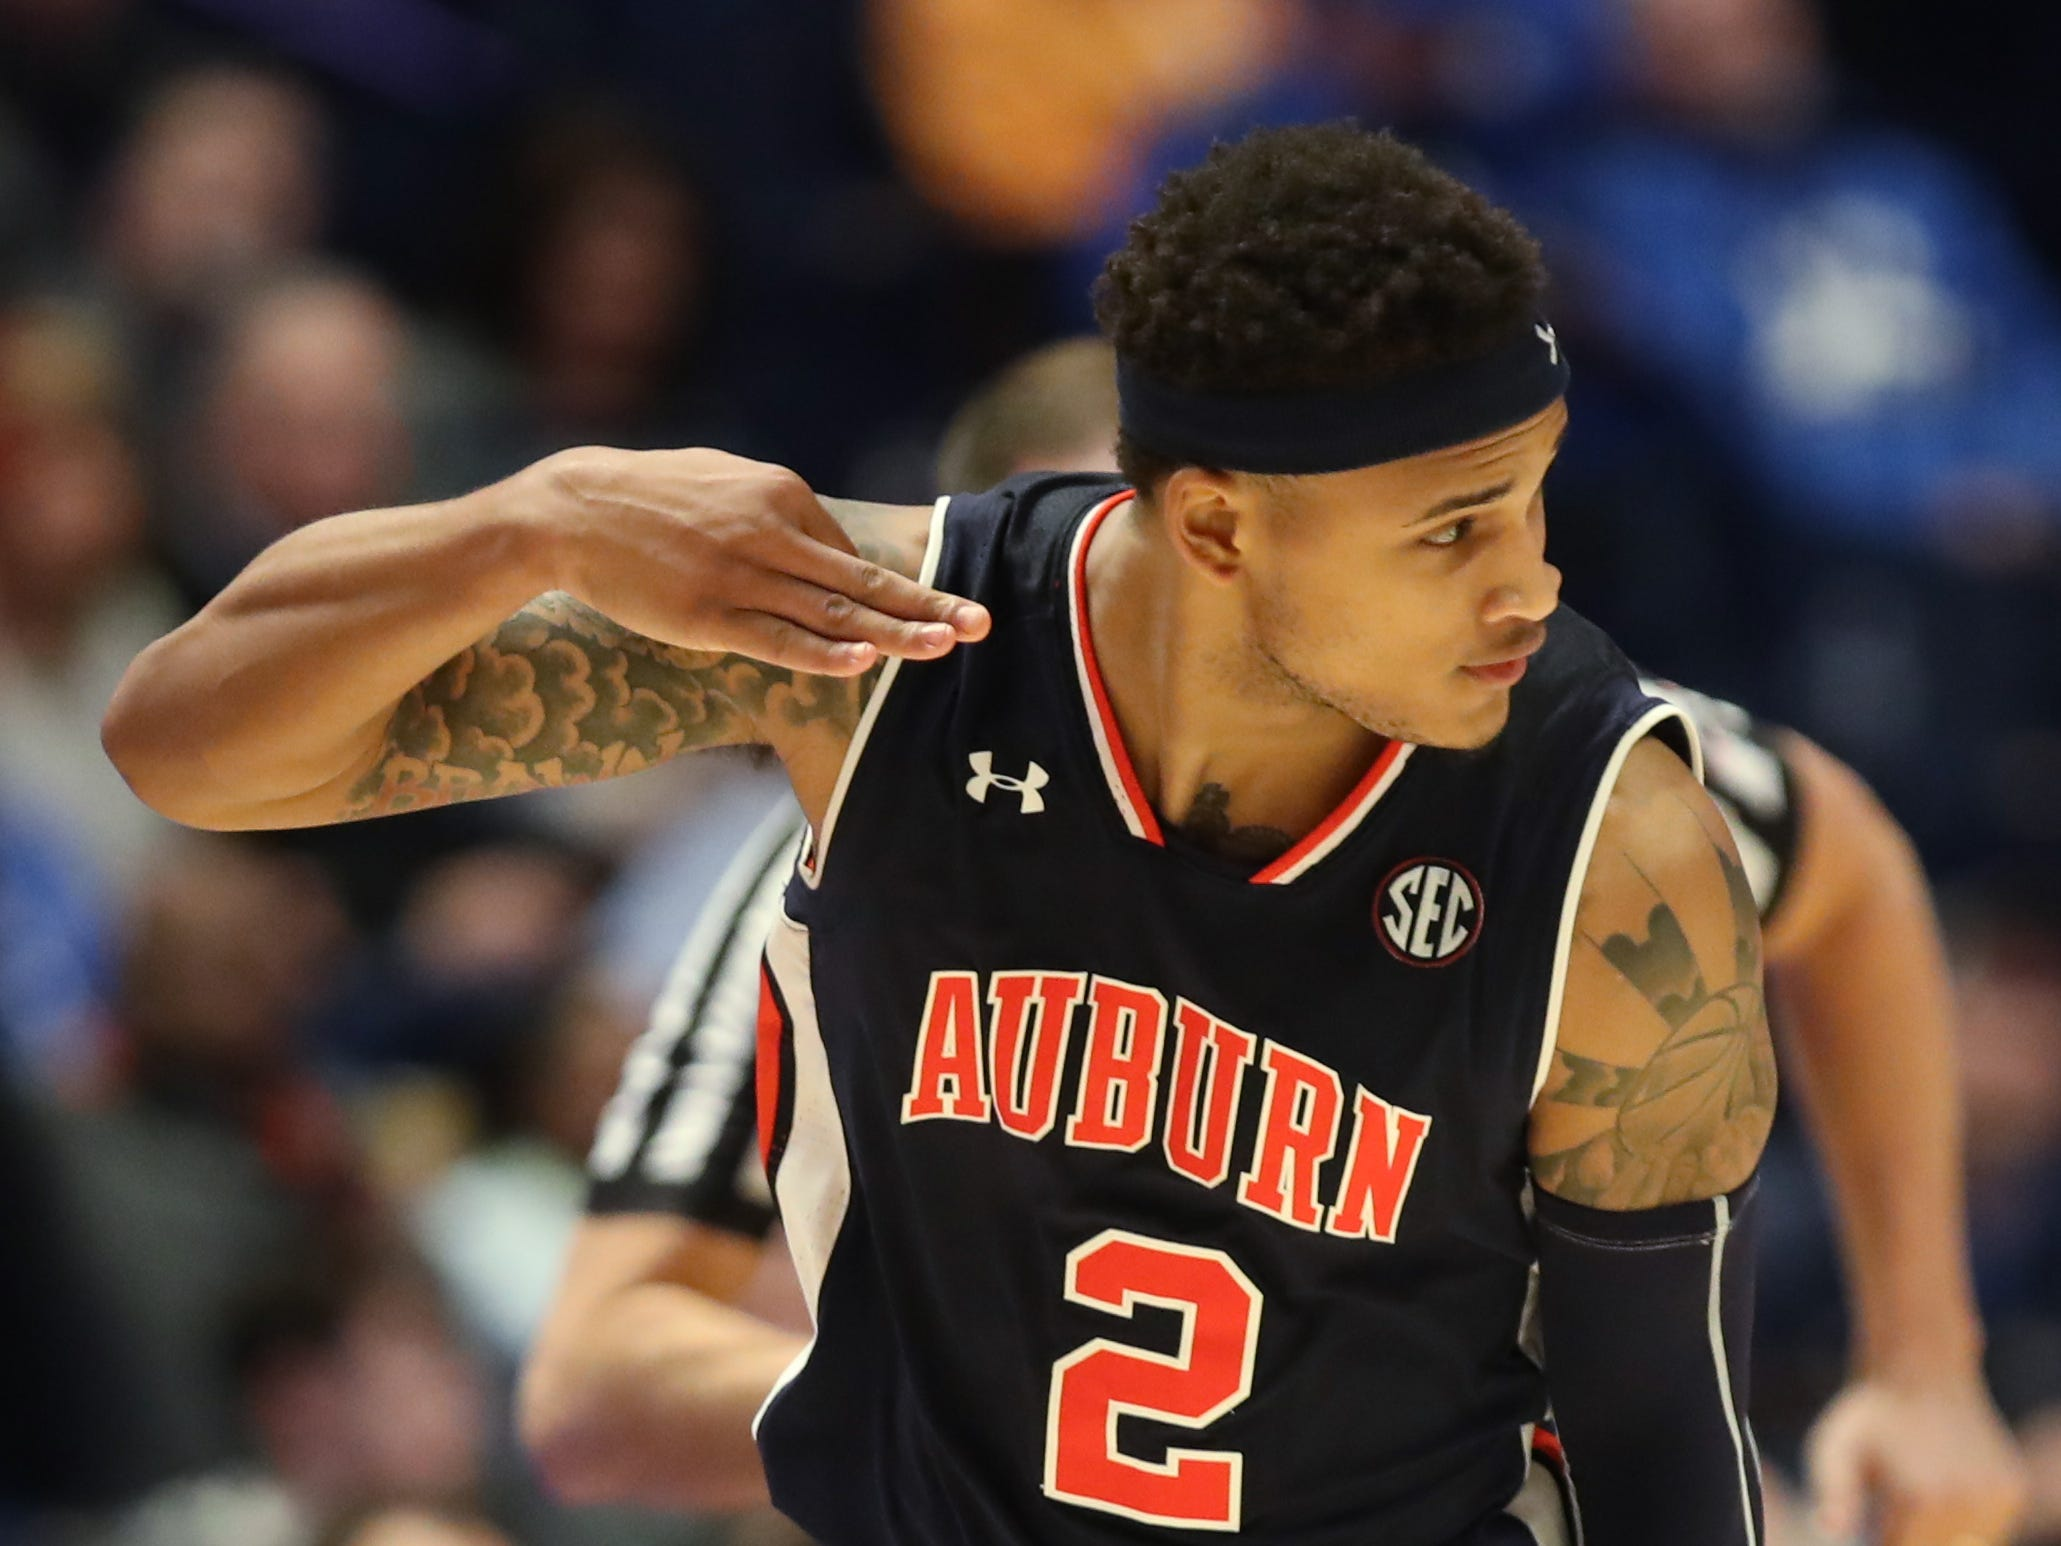 Auburn guard Bryce Brown (2) celebrates his three-pointer during the second half of the SEC Men's Basketball Tournament game at Bridgestone Arena in Nashville, Tenn., Friday, March 15, 2019.